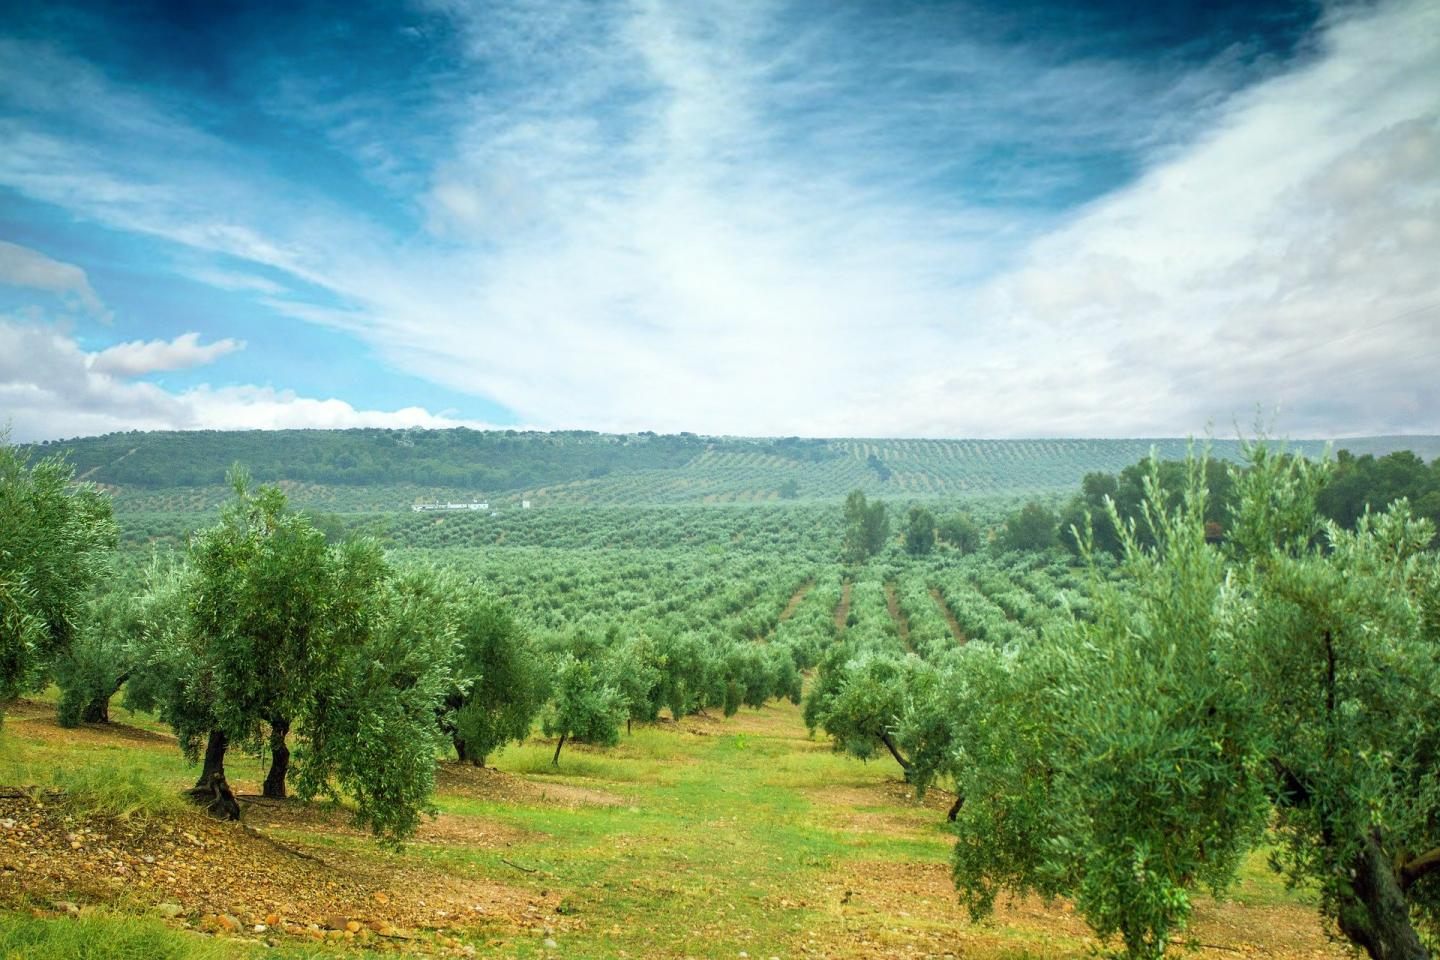 Archive image of a field of olive trees